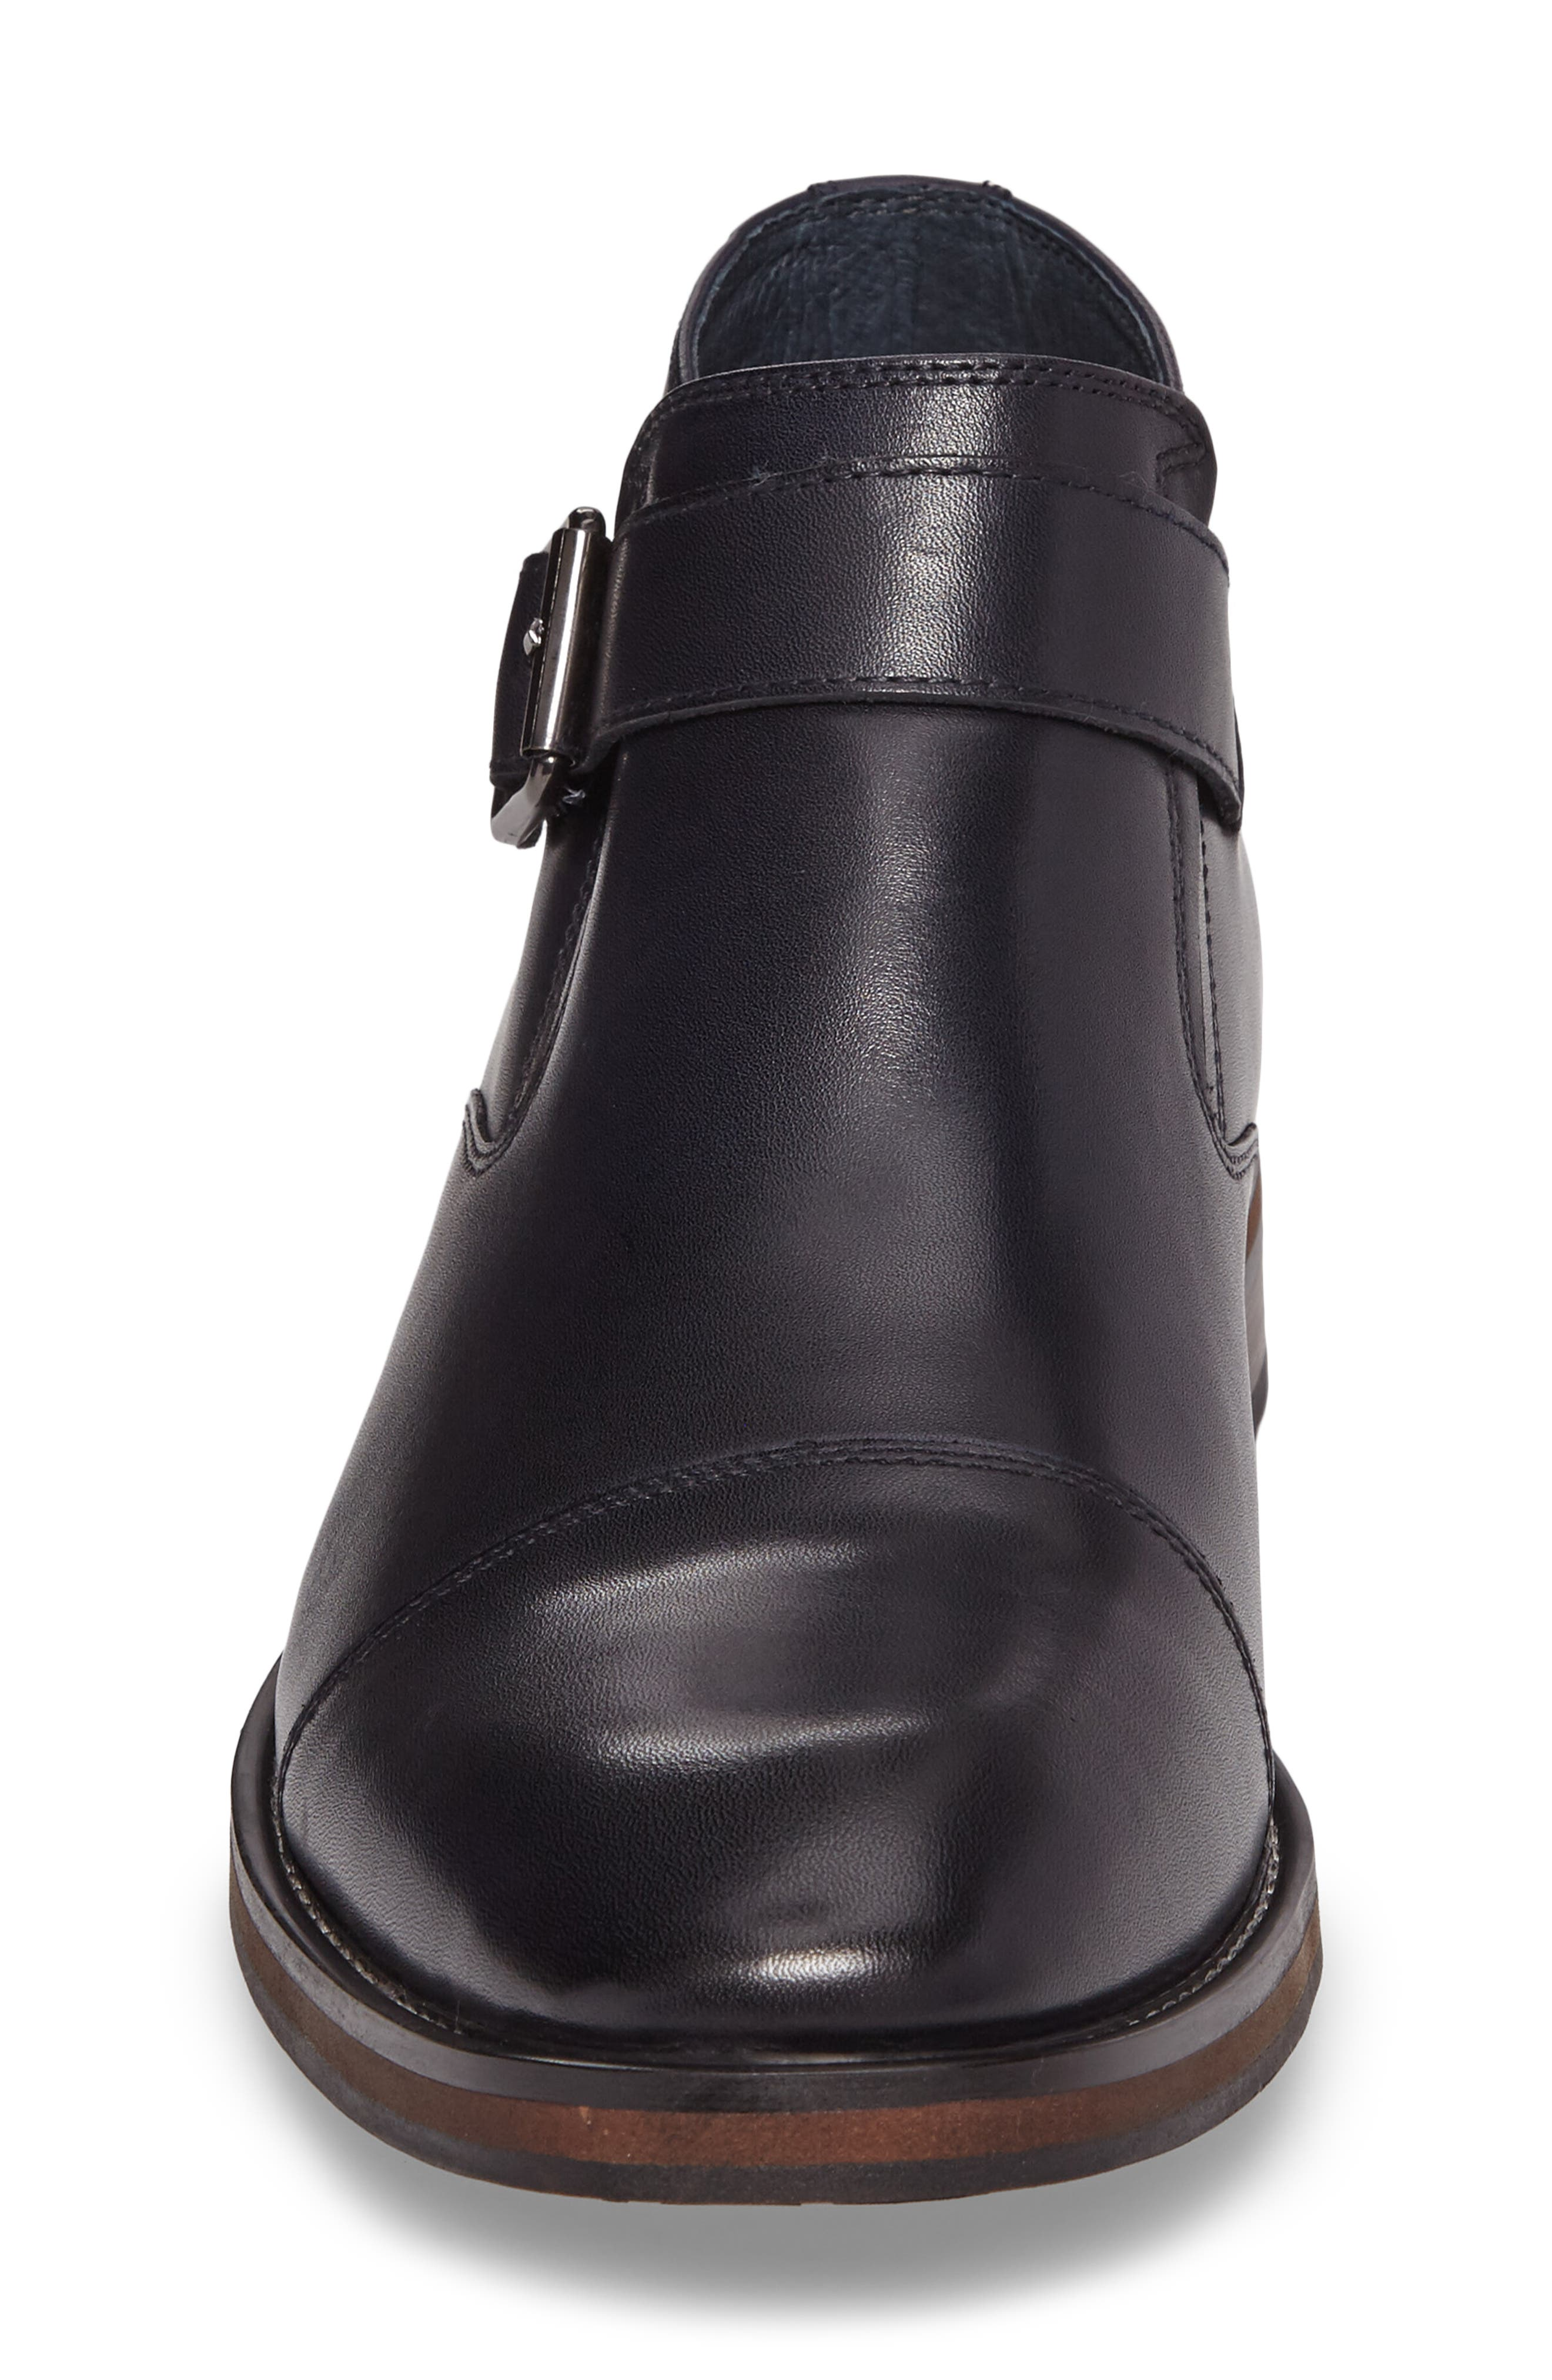 Alternate Image 4  - Zanzara Lami Monk Strap Boot (Men)